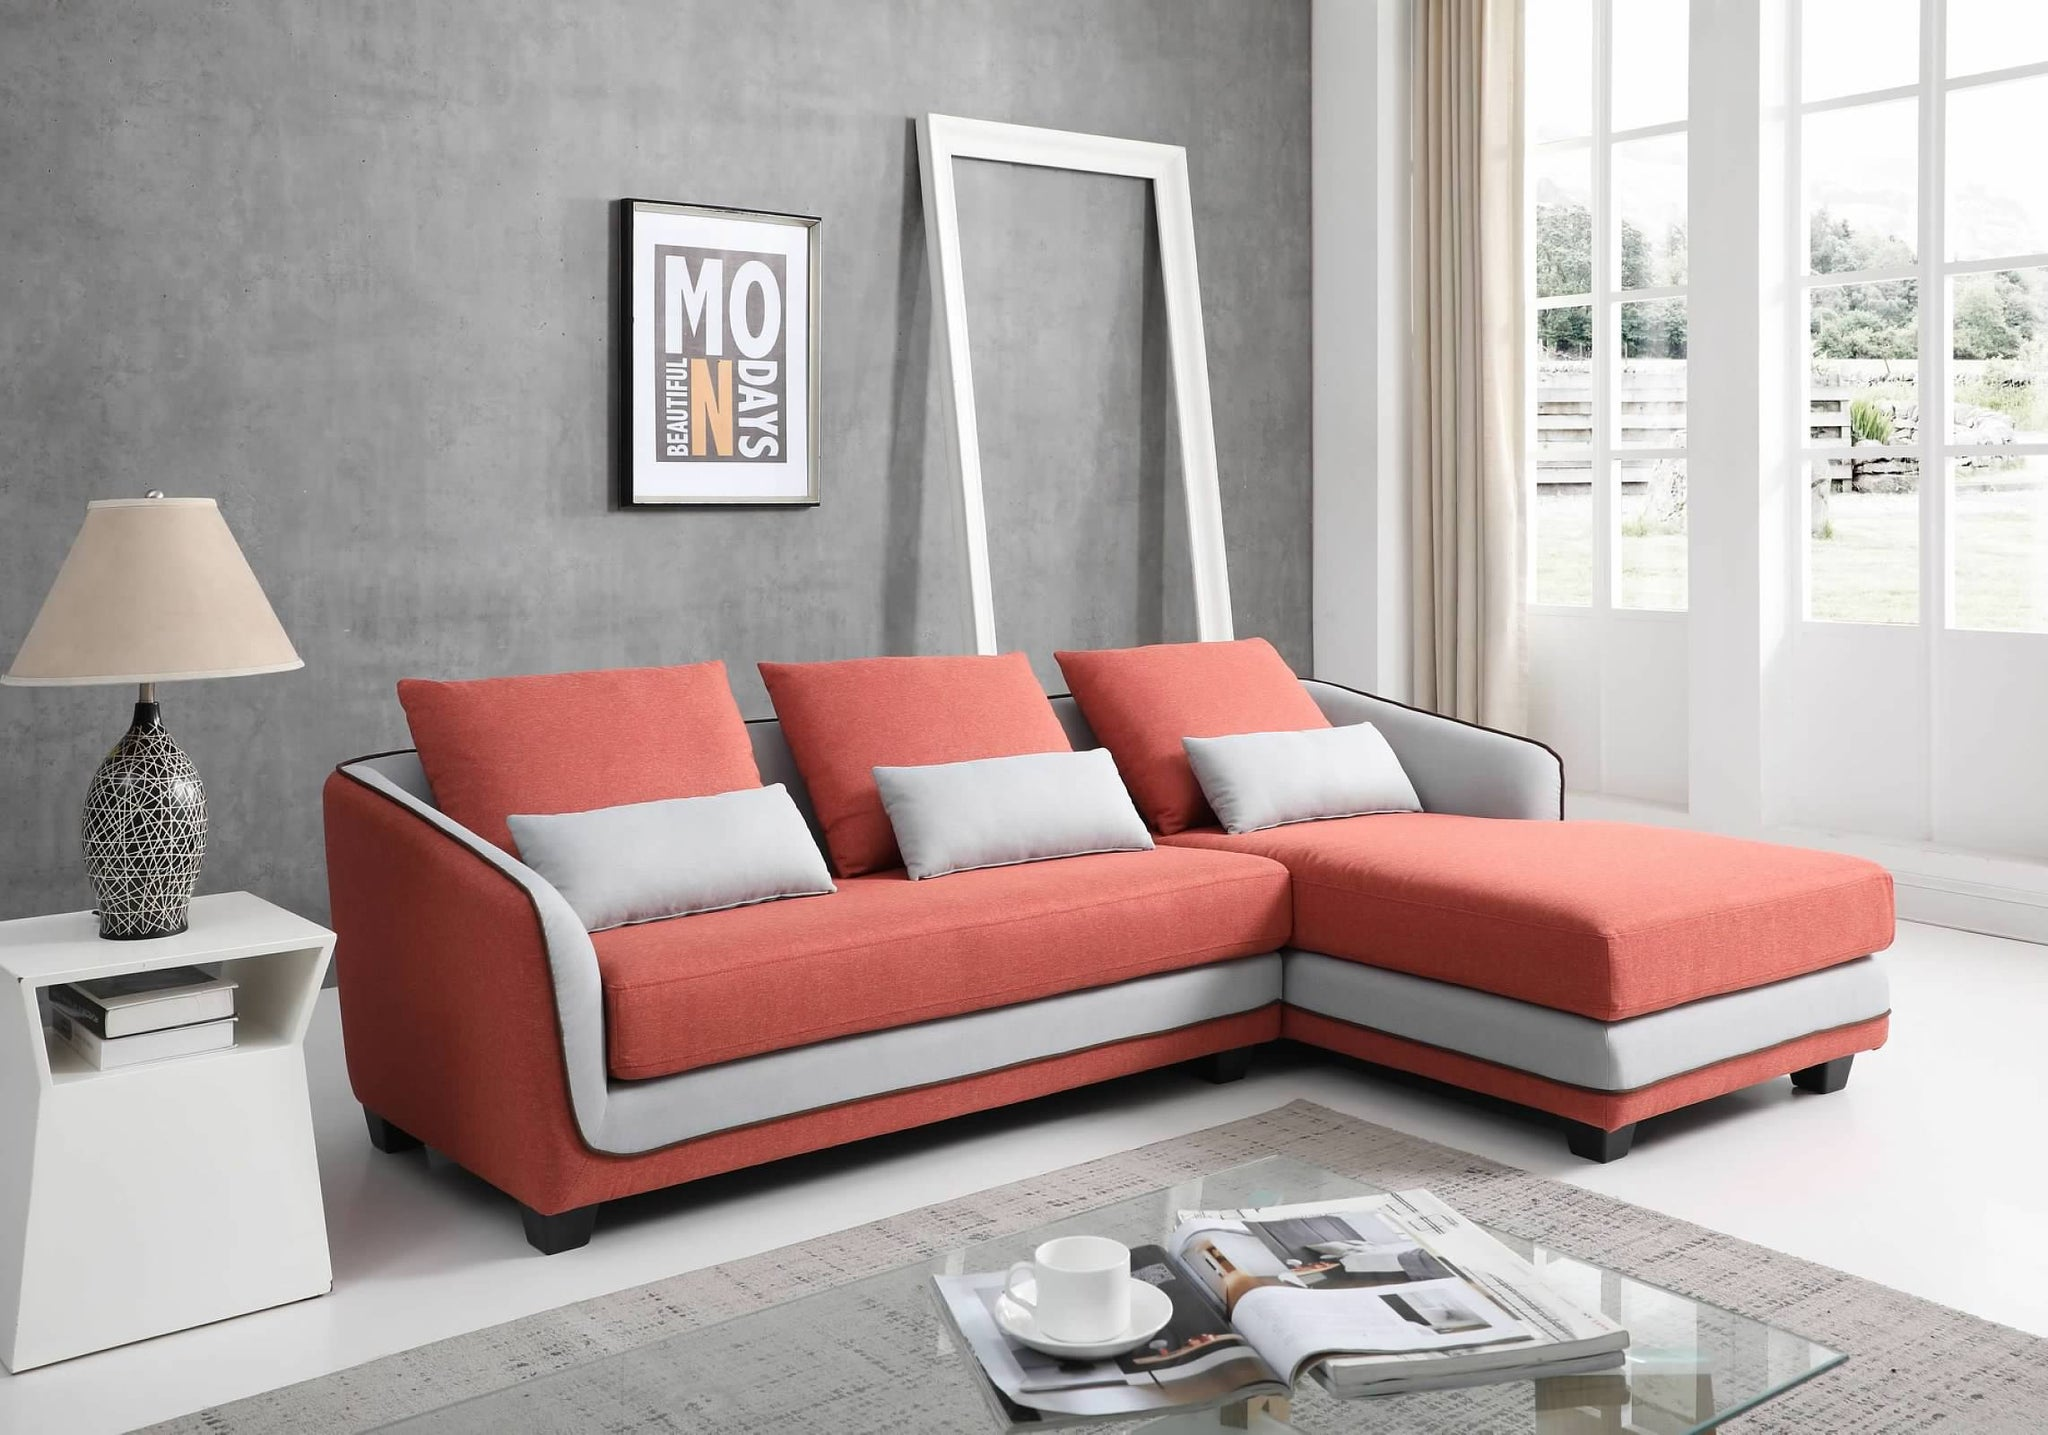 Greatime S2608 Moden Fabric Section Sofa